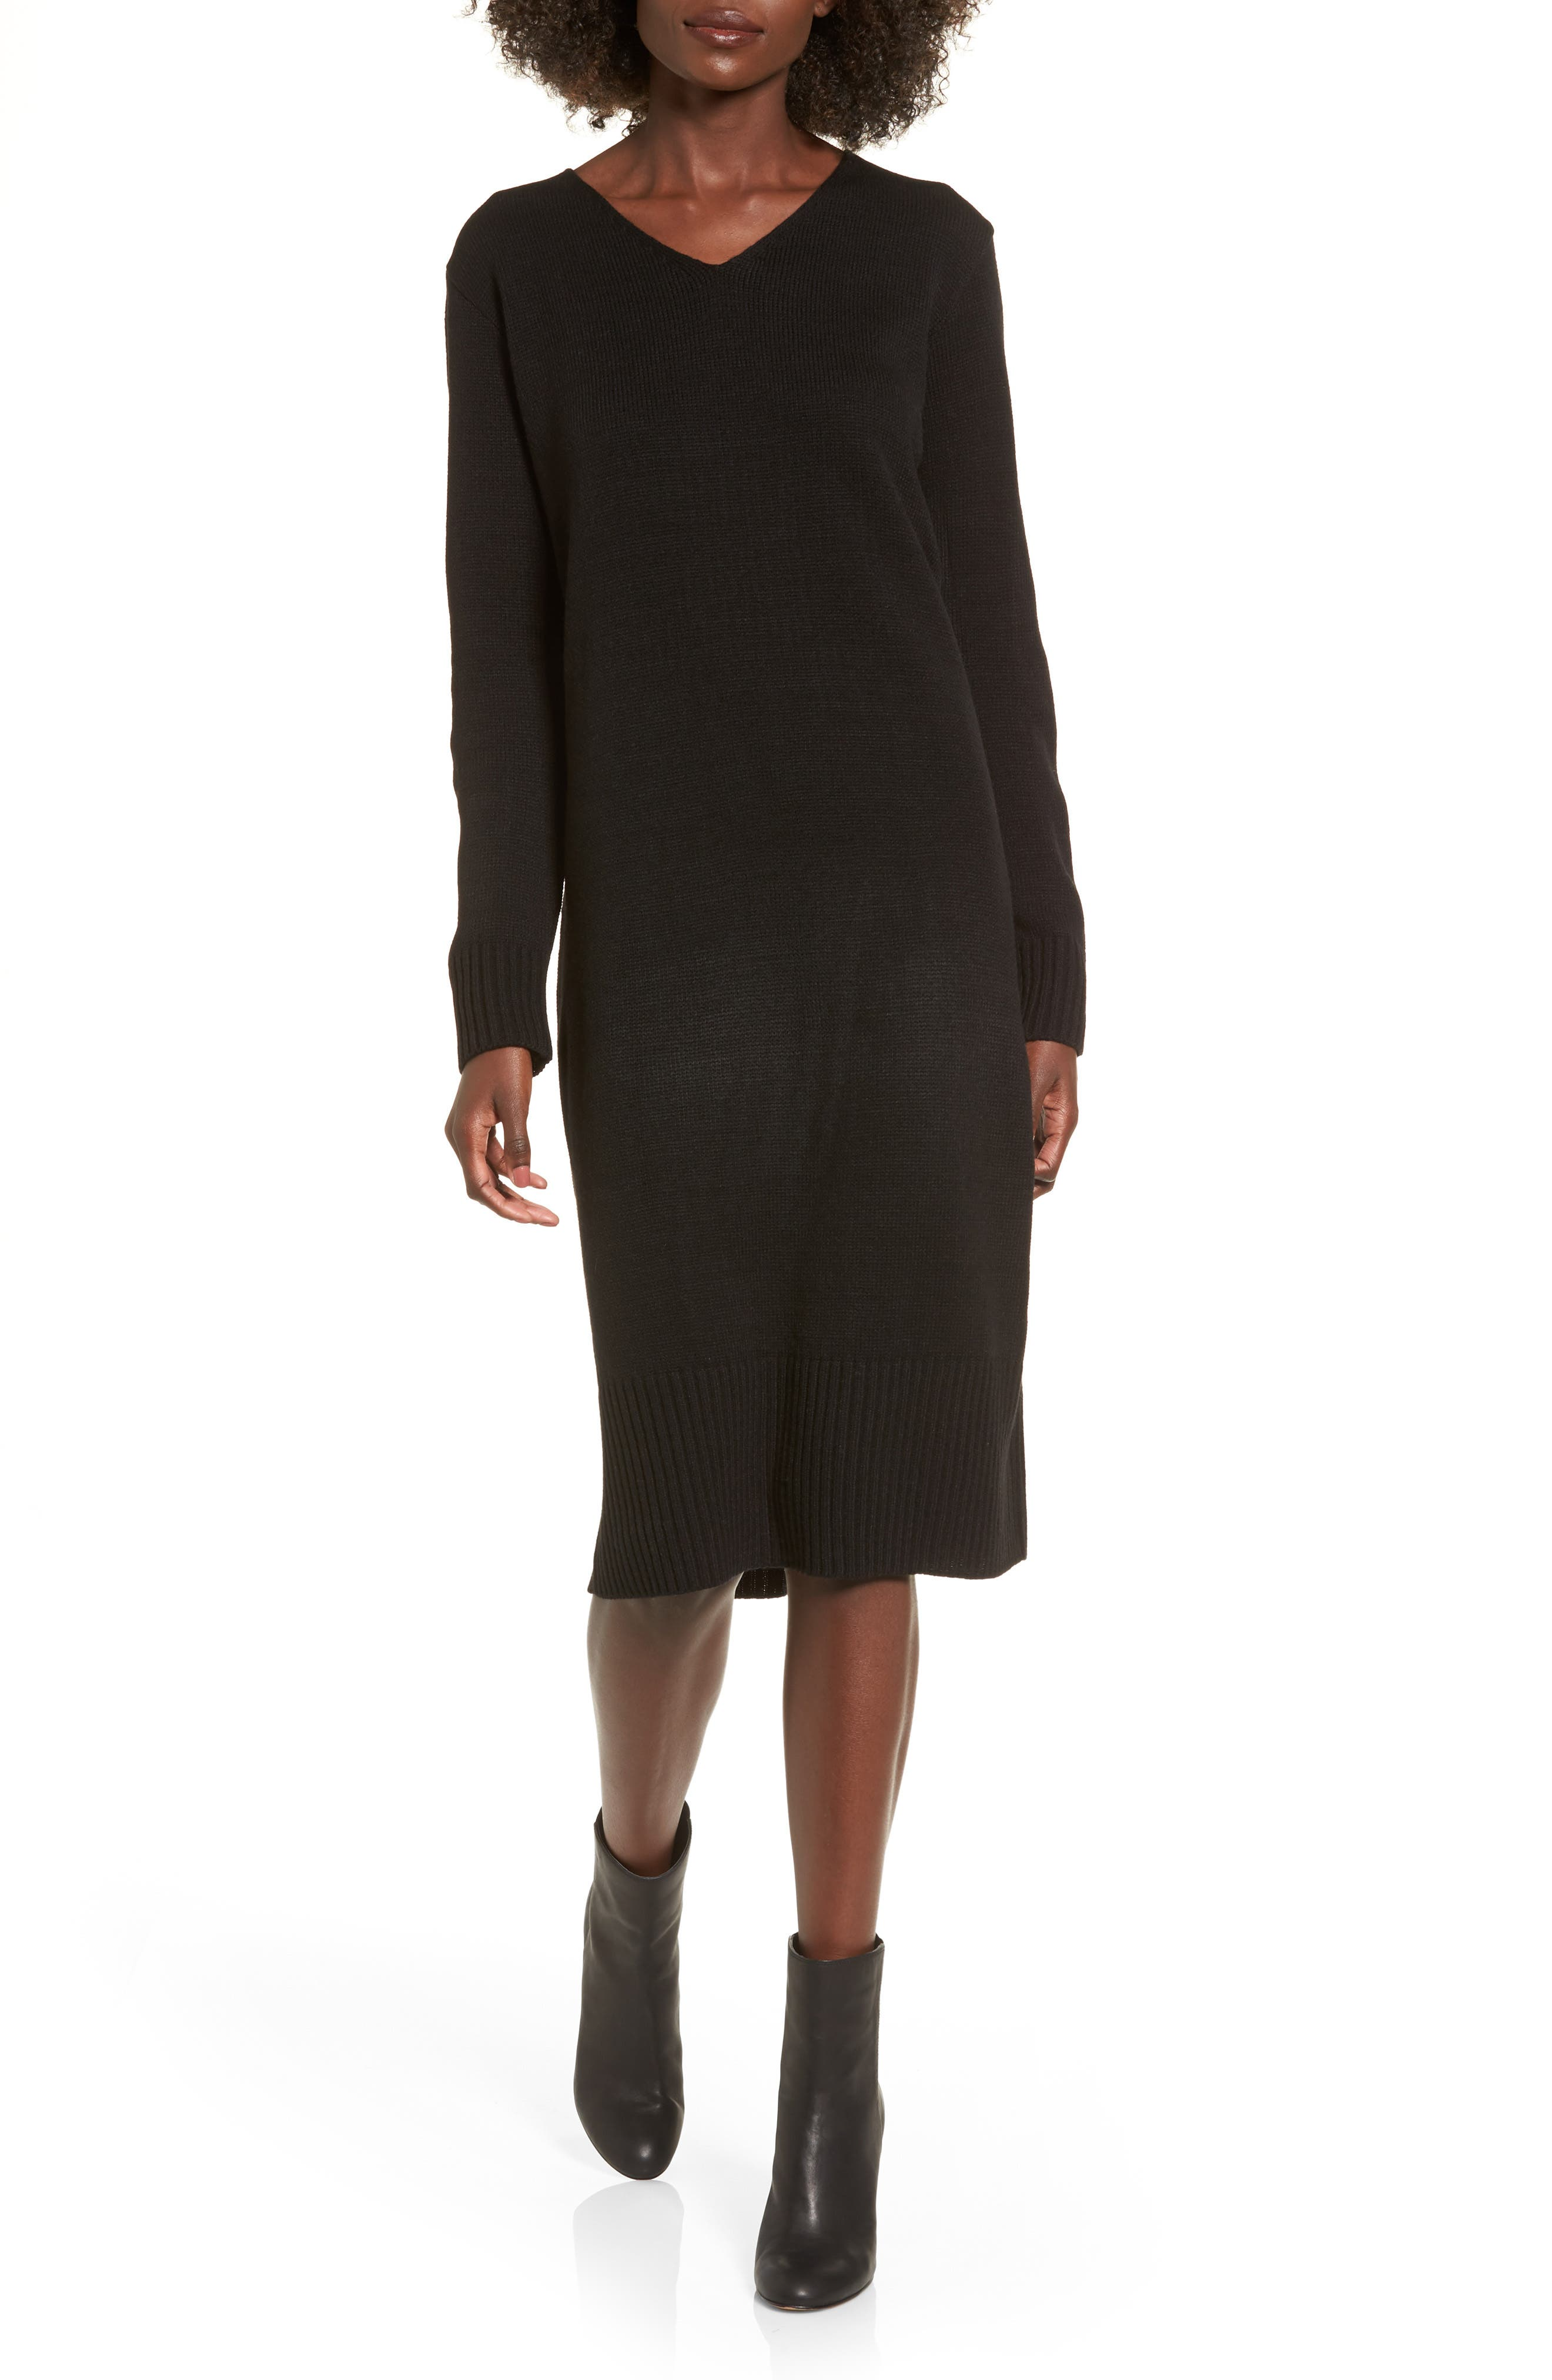 Cotton Emporium Sweater Dress